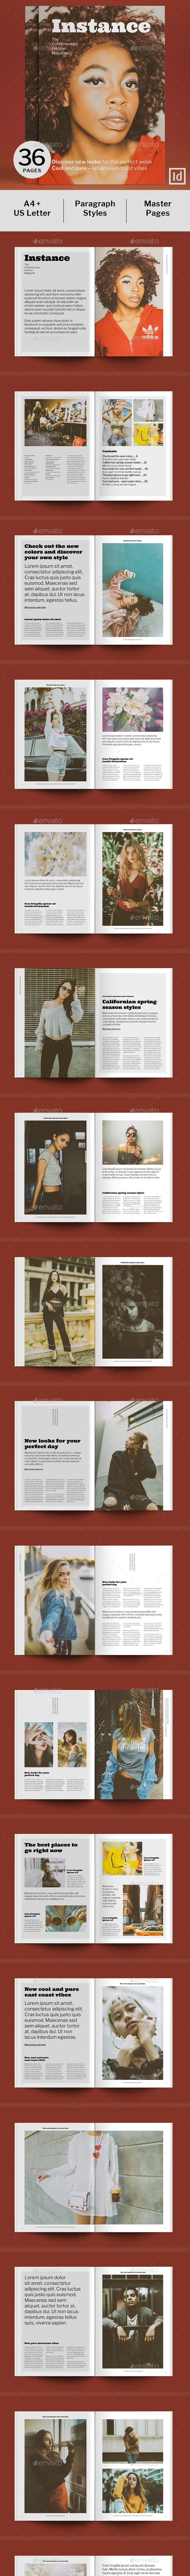 Instance – The Contemporary Fashion Magazine - Magazines Print Templates